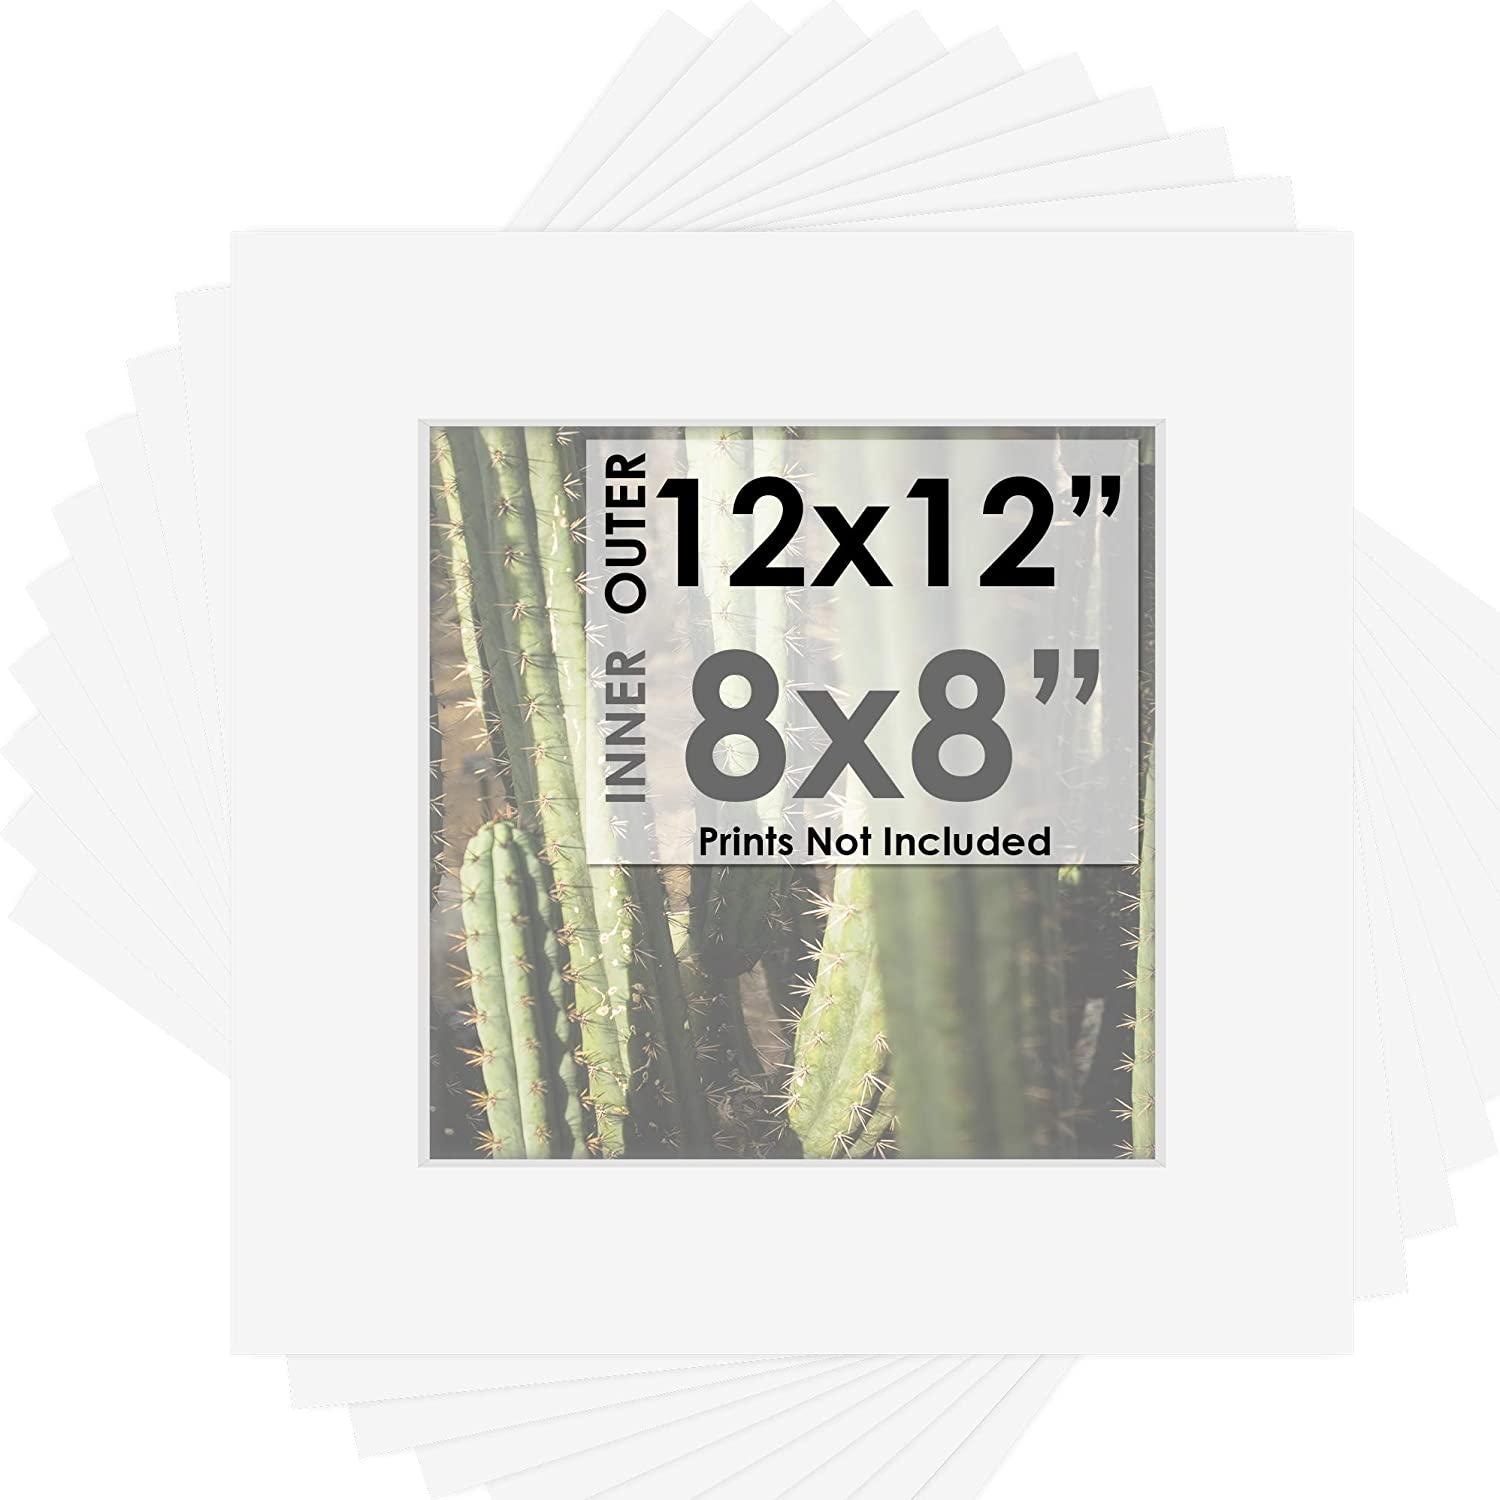 Mat Board Center Pack of 10 12x12 for White A - Mats Memphis Mall 8x8 Color Brand Cheap Sale Venue